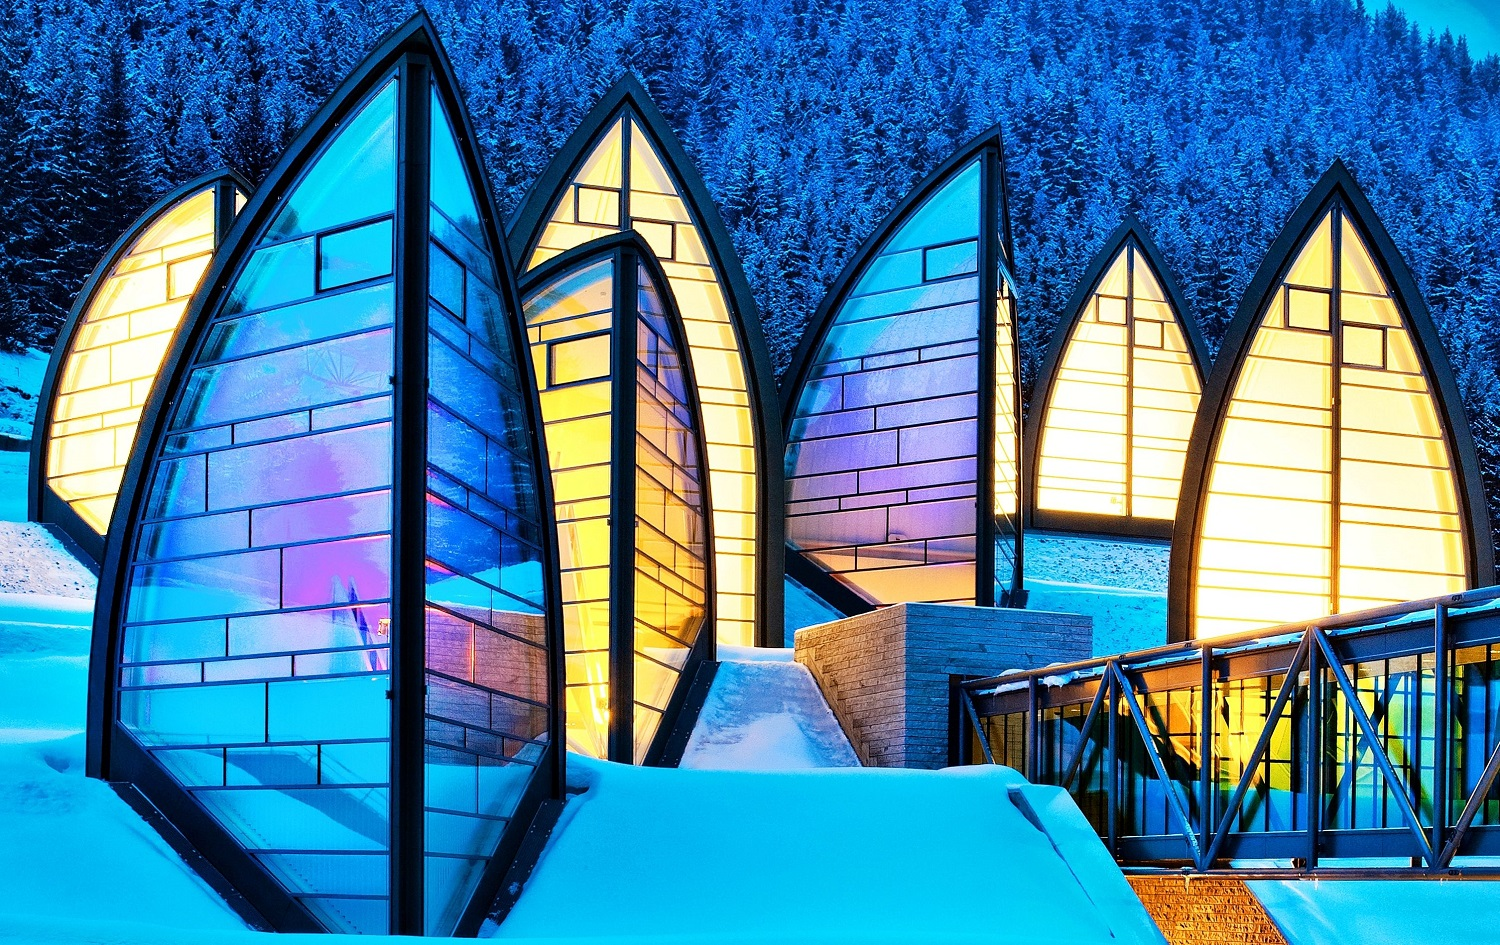 Architecturally Impressive Hotels Around The World | Tschuggen Bergoase Spa - Arosa, Switzerland